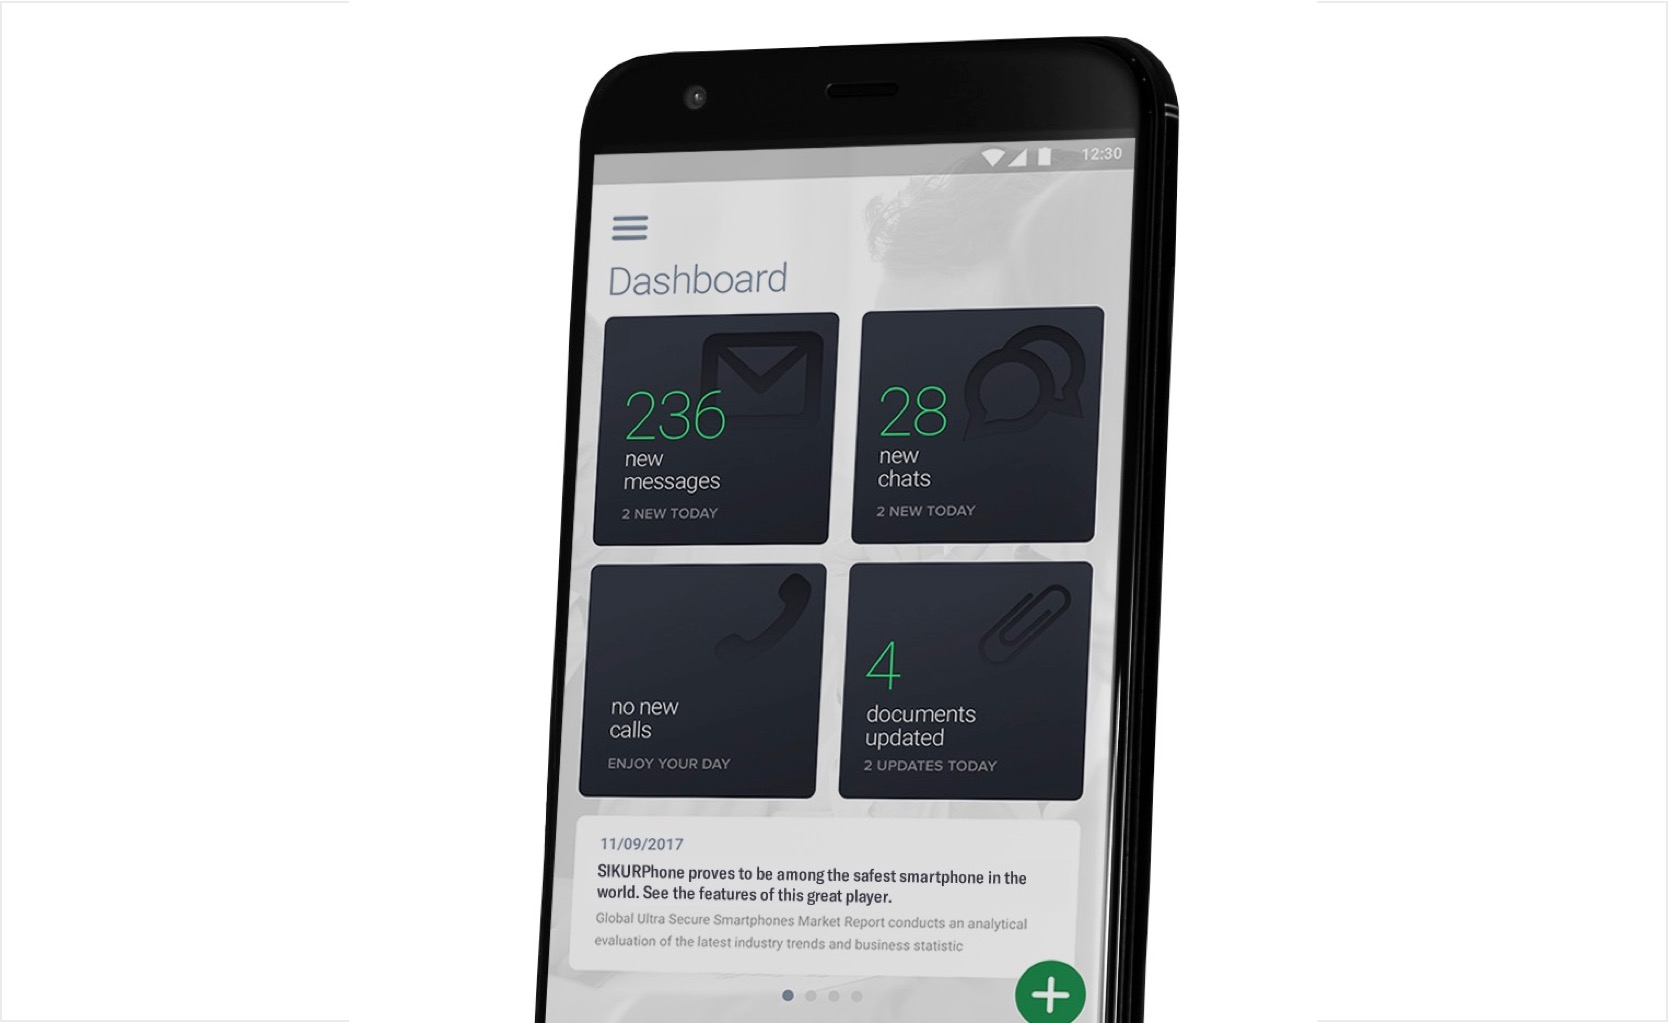 Encrypted SIKURPhone protects data and cryptocurrency